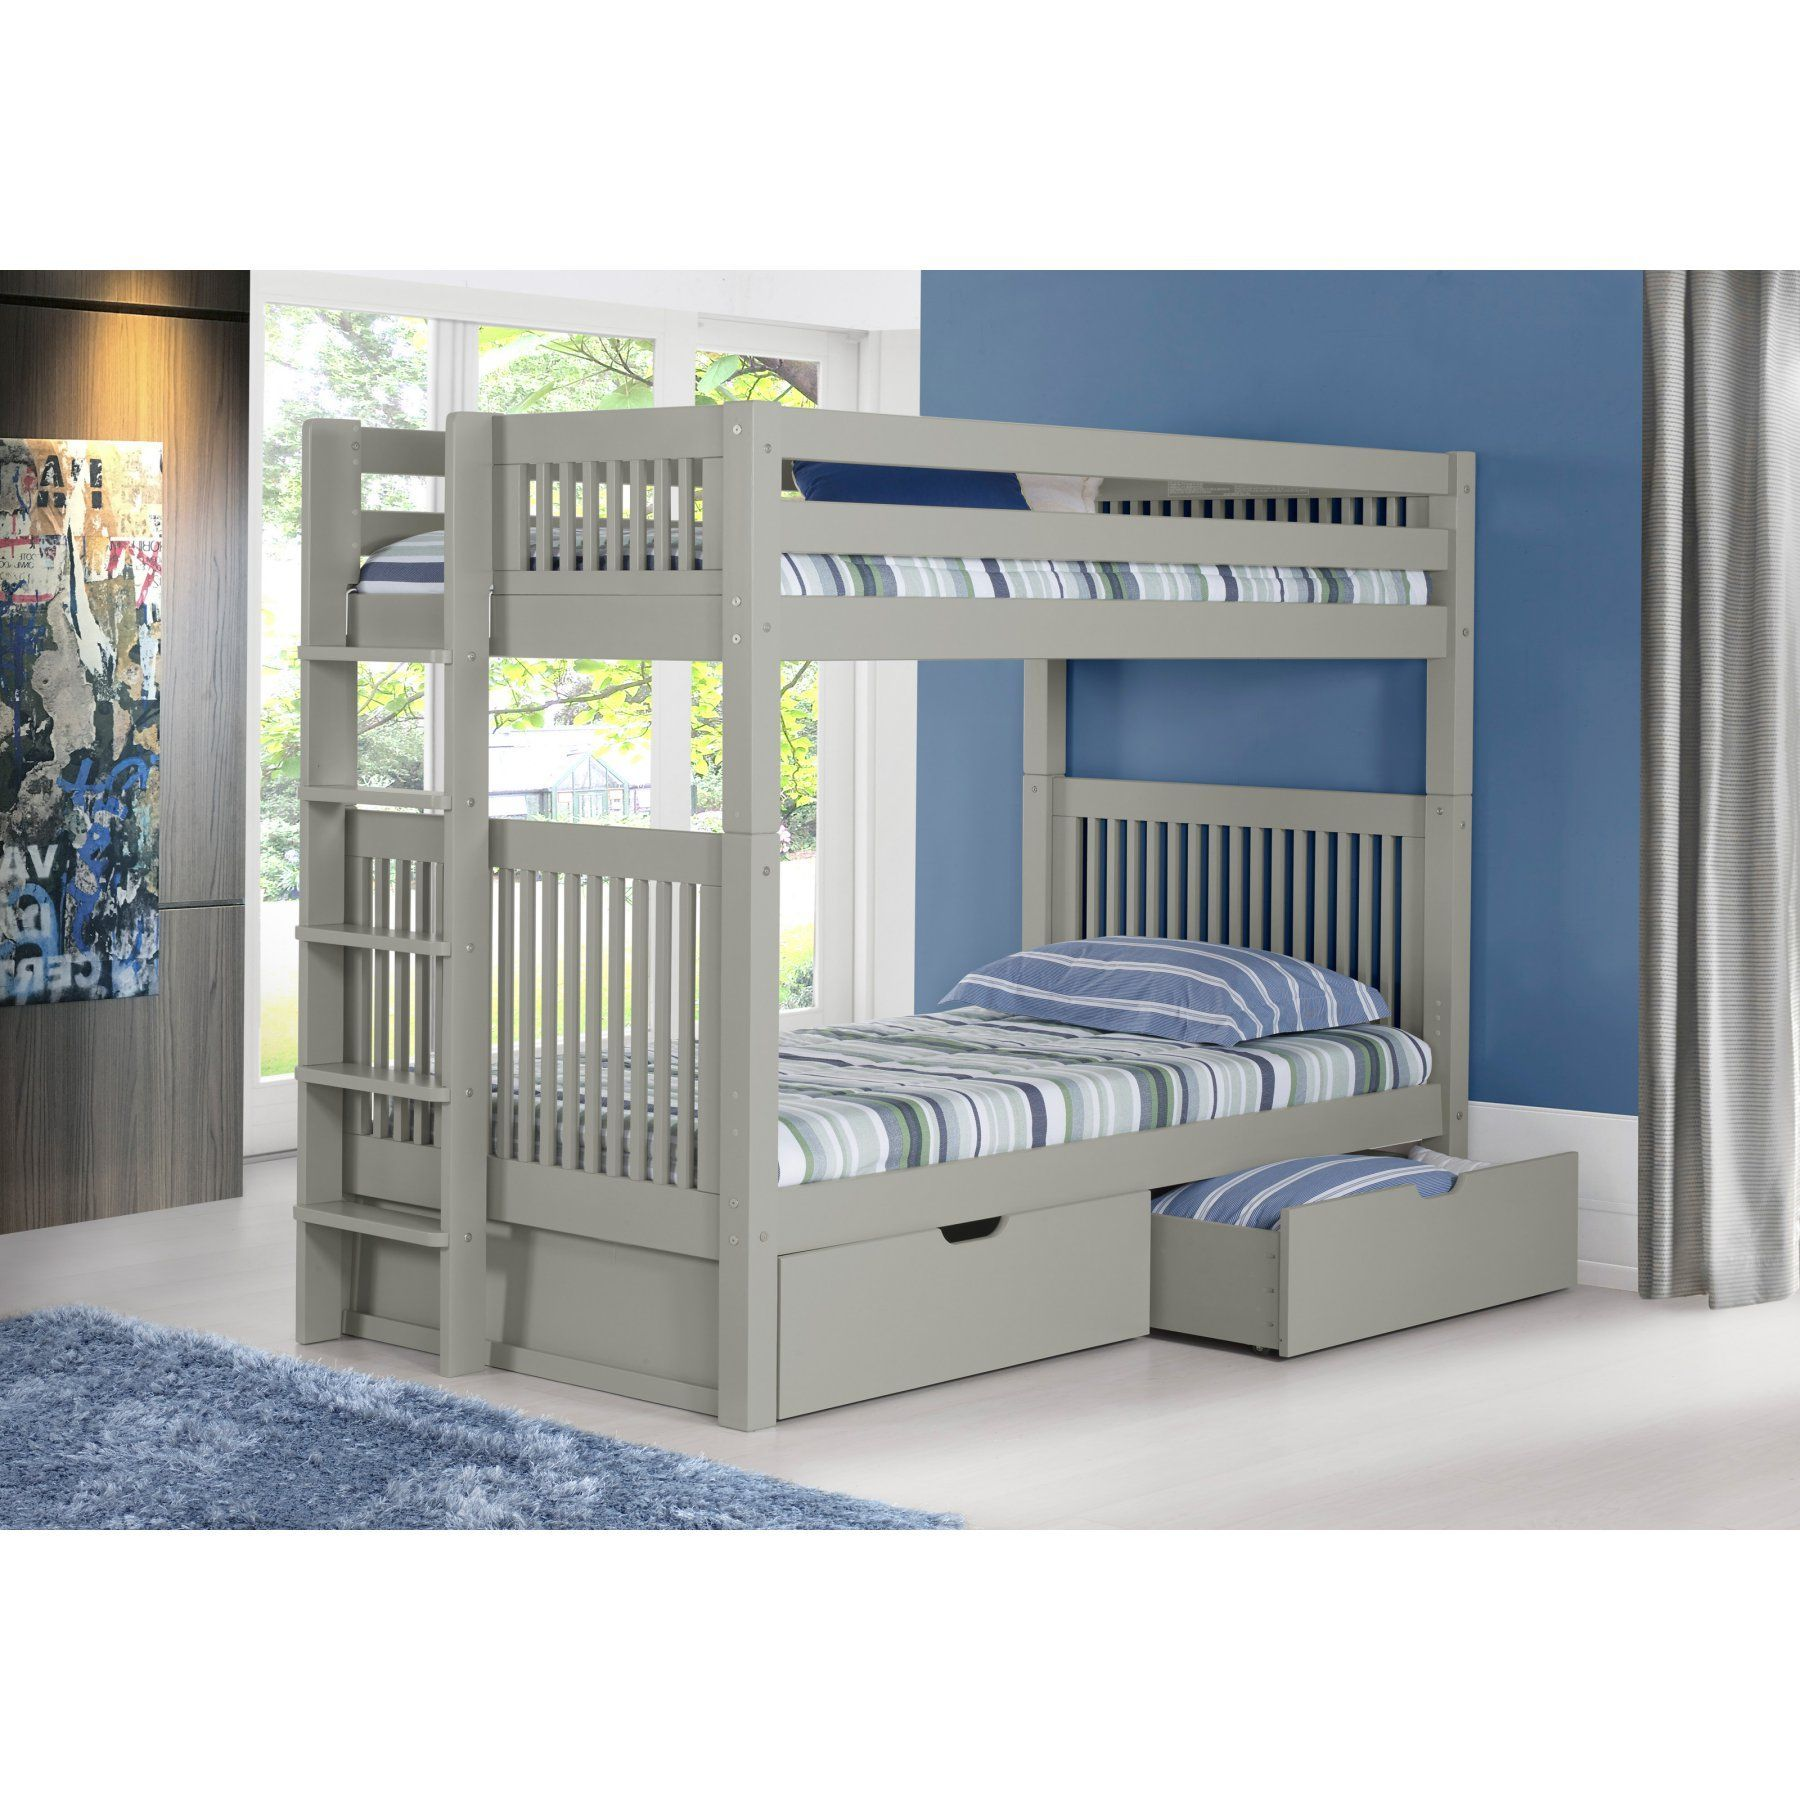 Corner twin loft bed  Camaflexi Mission Headboard Twin over Twin Bunk Bed with Bed End